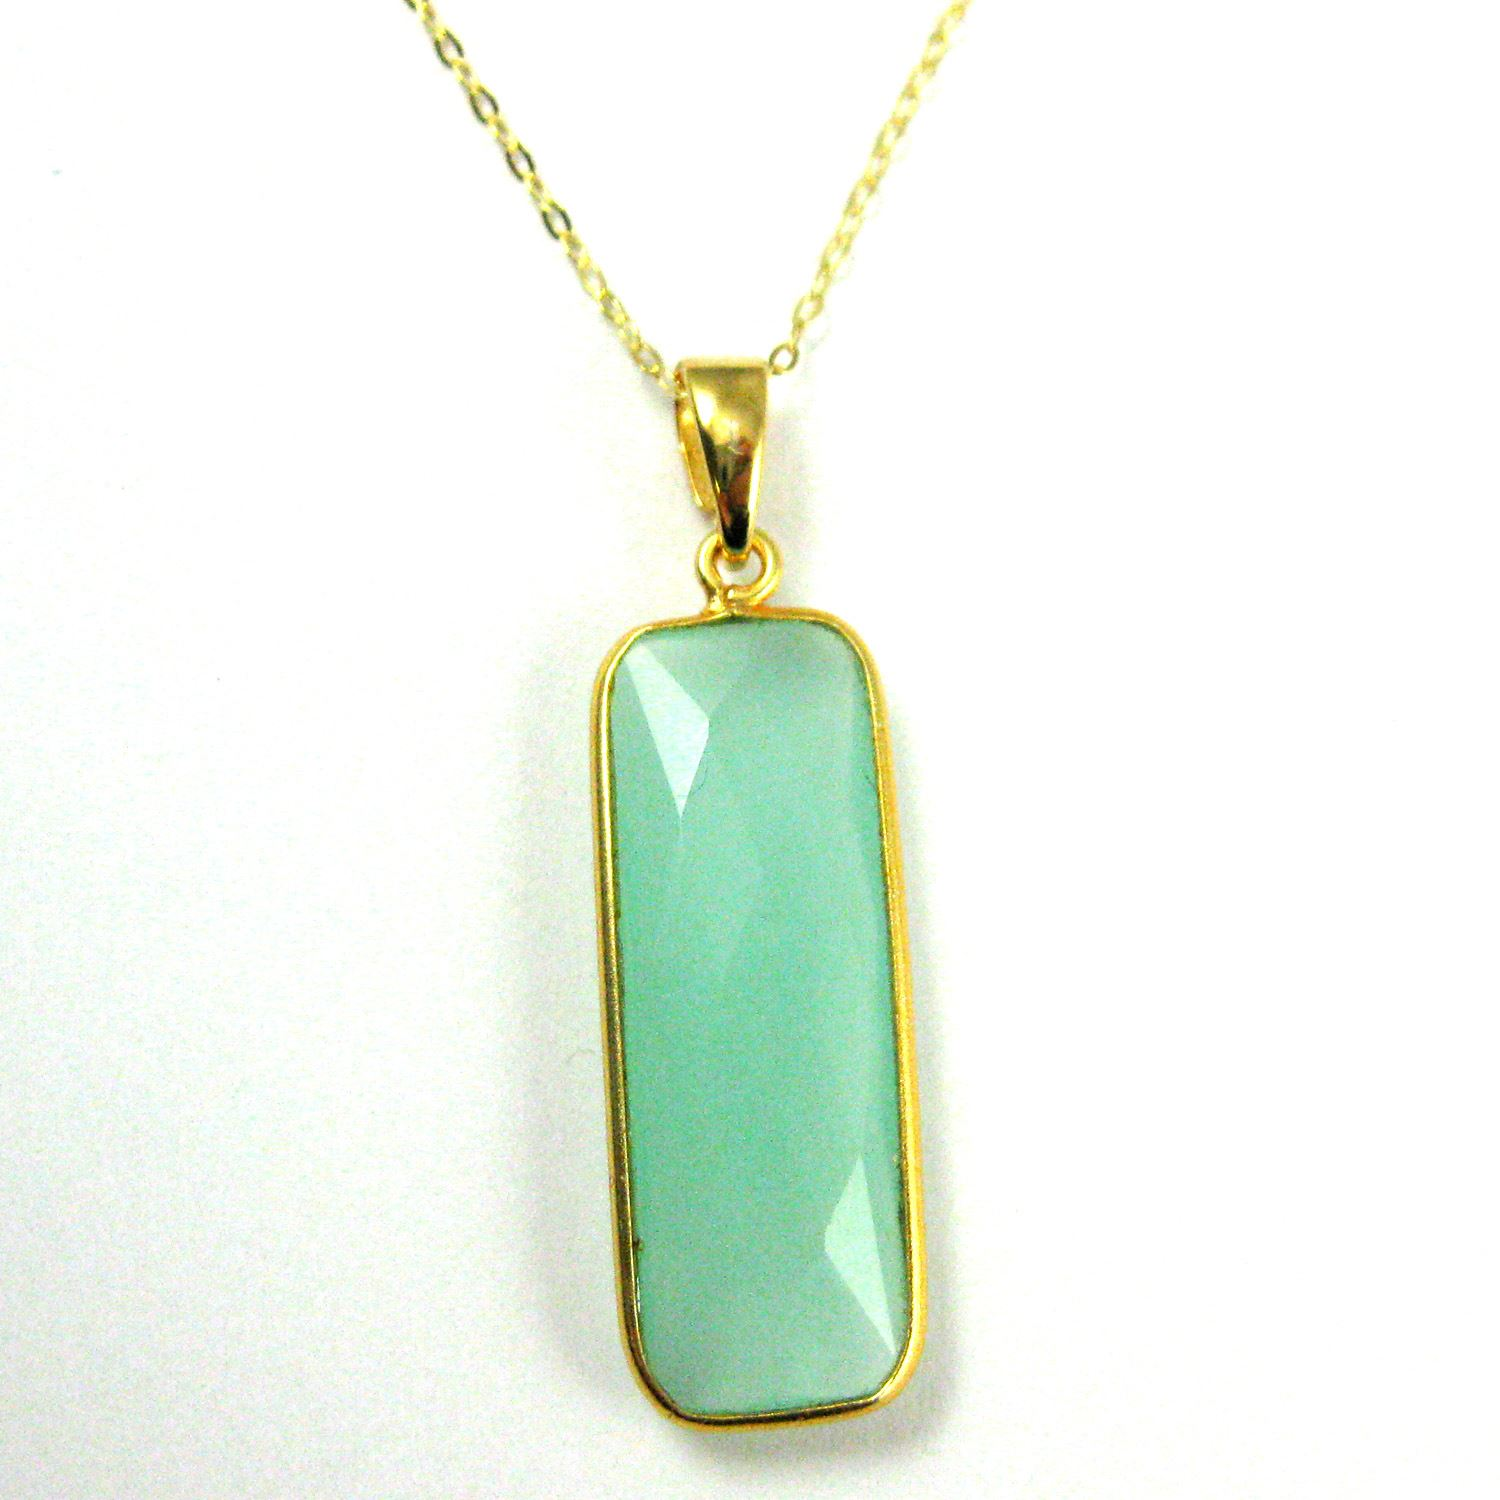 Bezel Gemstone Pendant with Bail - Gold plated Sterling Silver Rectangle Gem Pendant - Ready for Necklace - 40mm - Peru Chalcedony